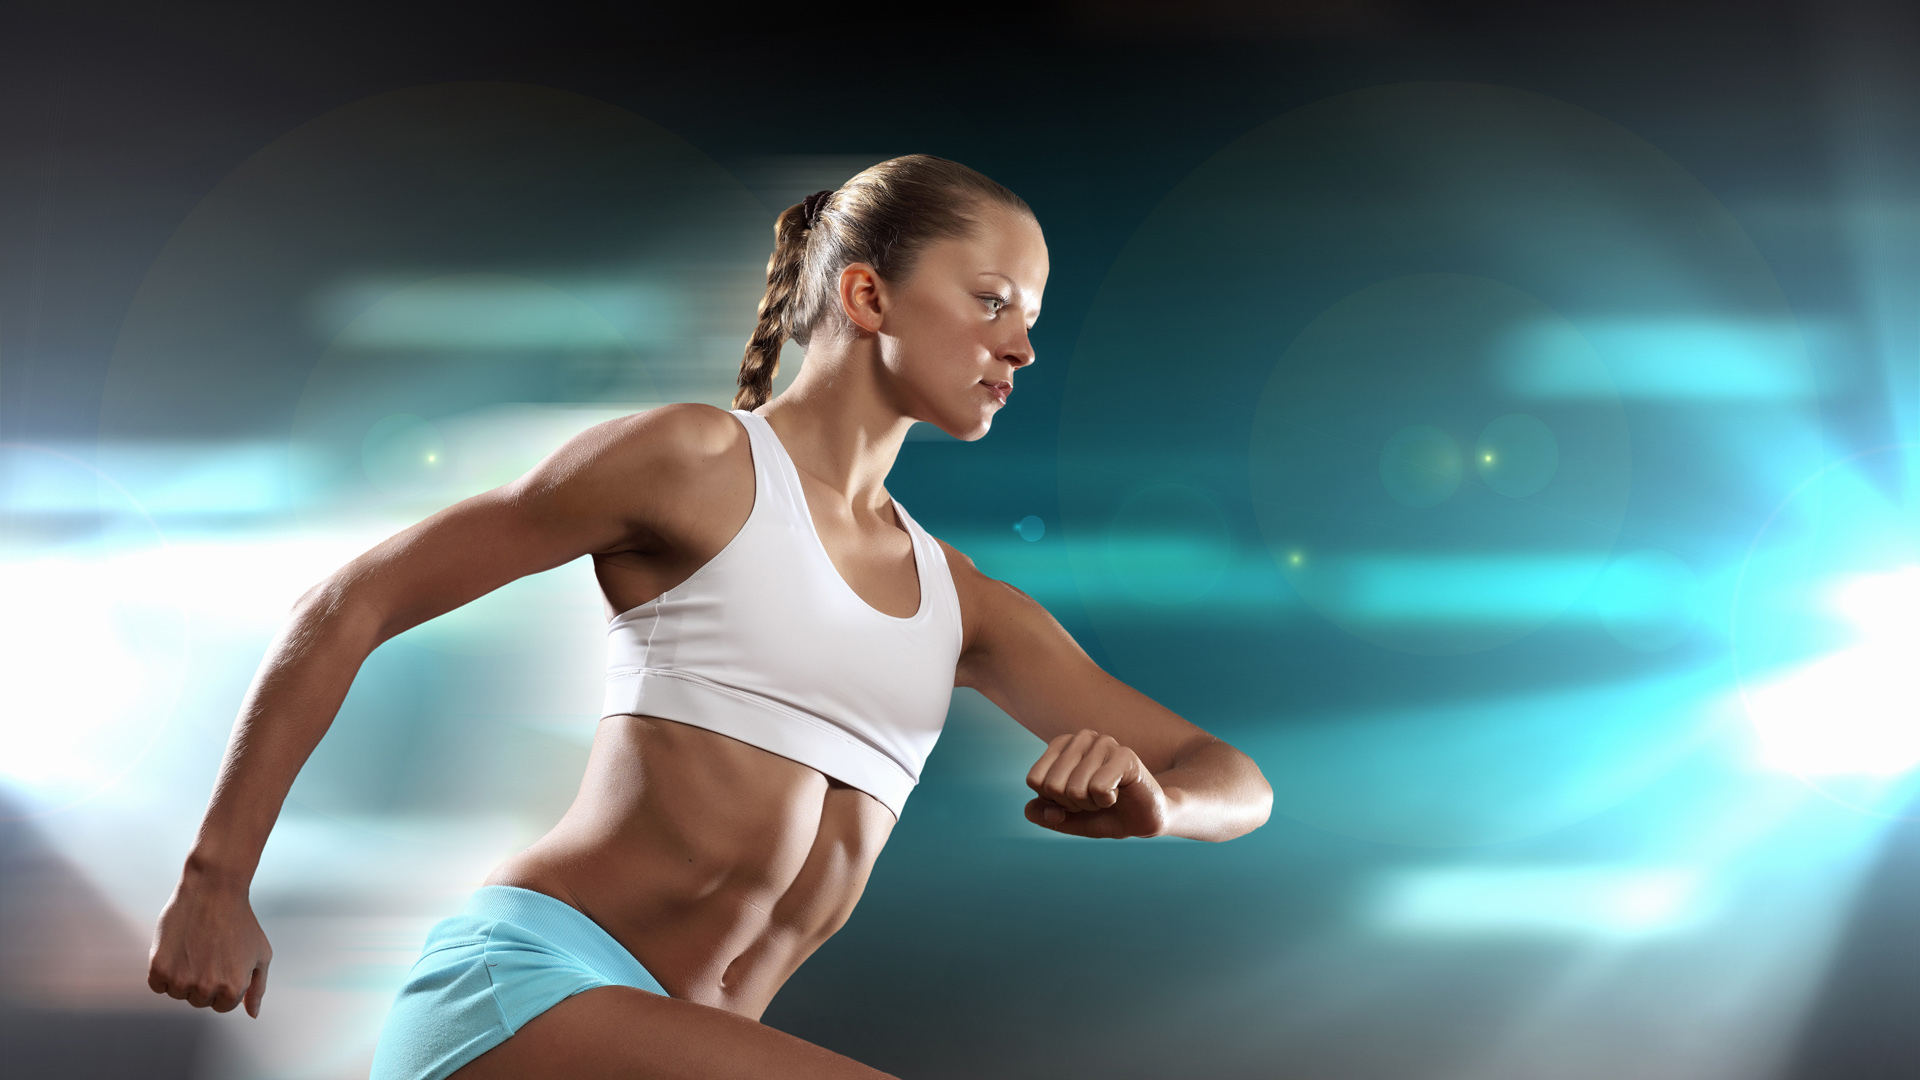 Fitness woman wallpapers and images   wallpapers pictures photos 1920x1080